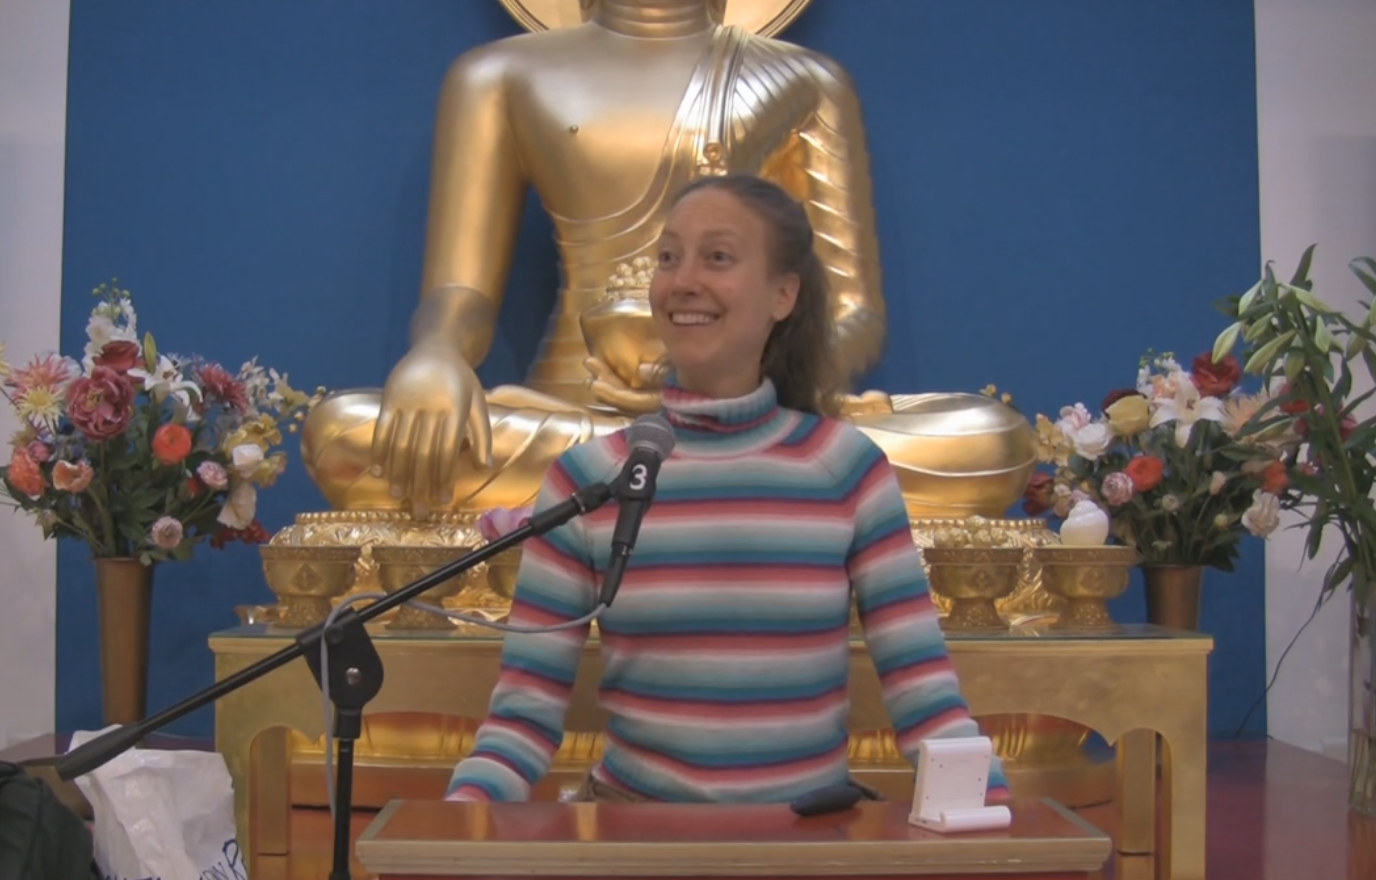 2015-10-08 16_05_45-Marieke van Vugt on the science of meditation on Vimeo